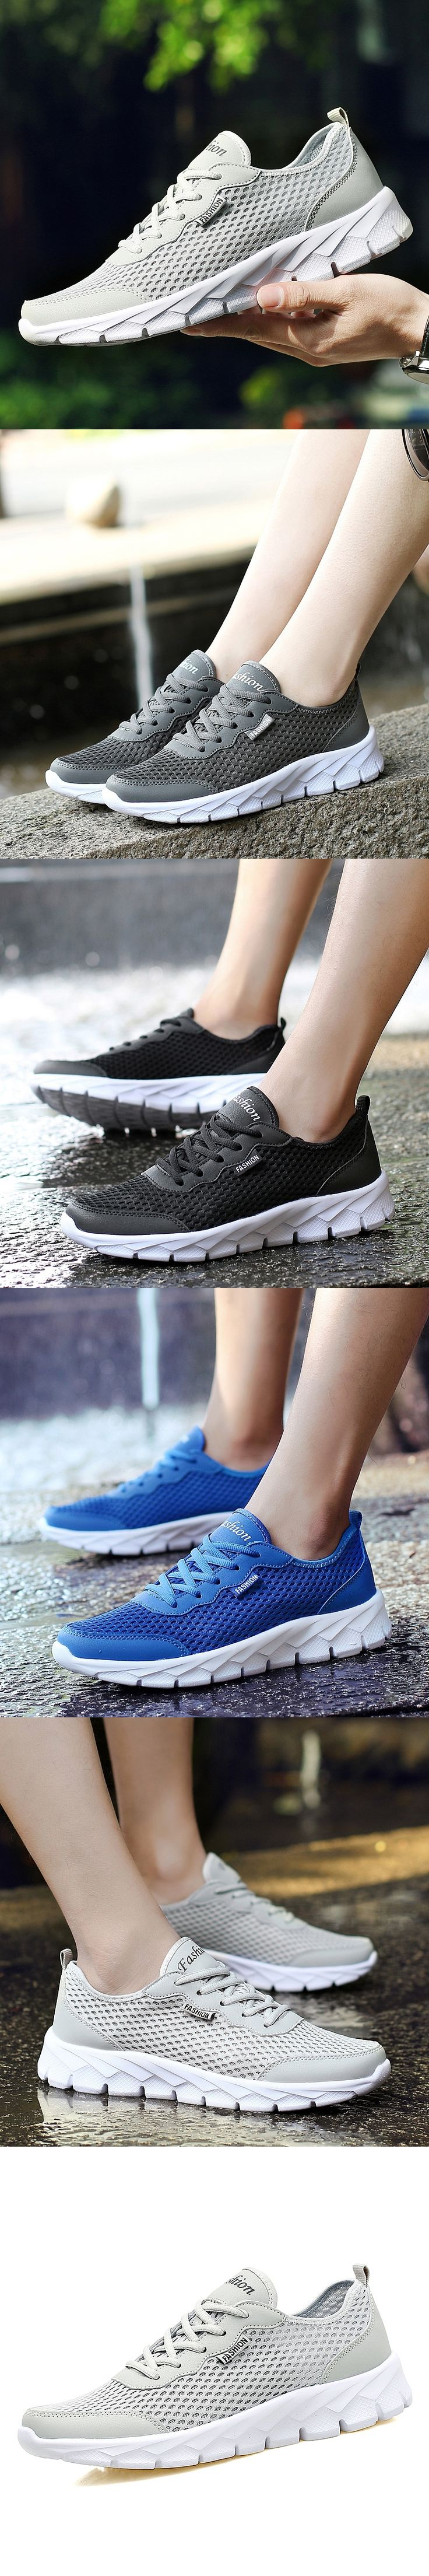 2017 Lover Cheap Men Women Sport Running Shoes mesh Summer Breathable athleti shoes Light Weight Sneakers Jogging Shoes Big Size